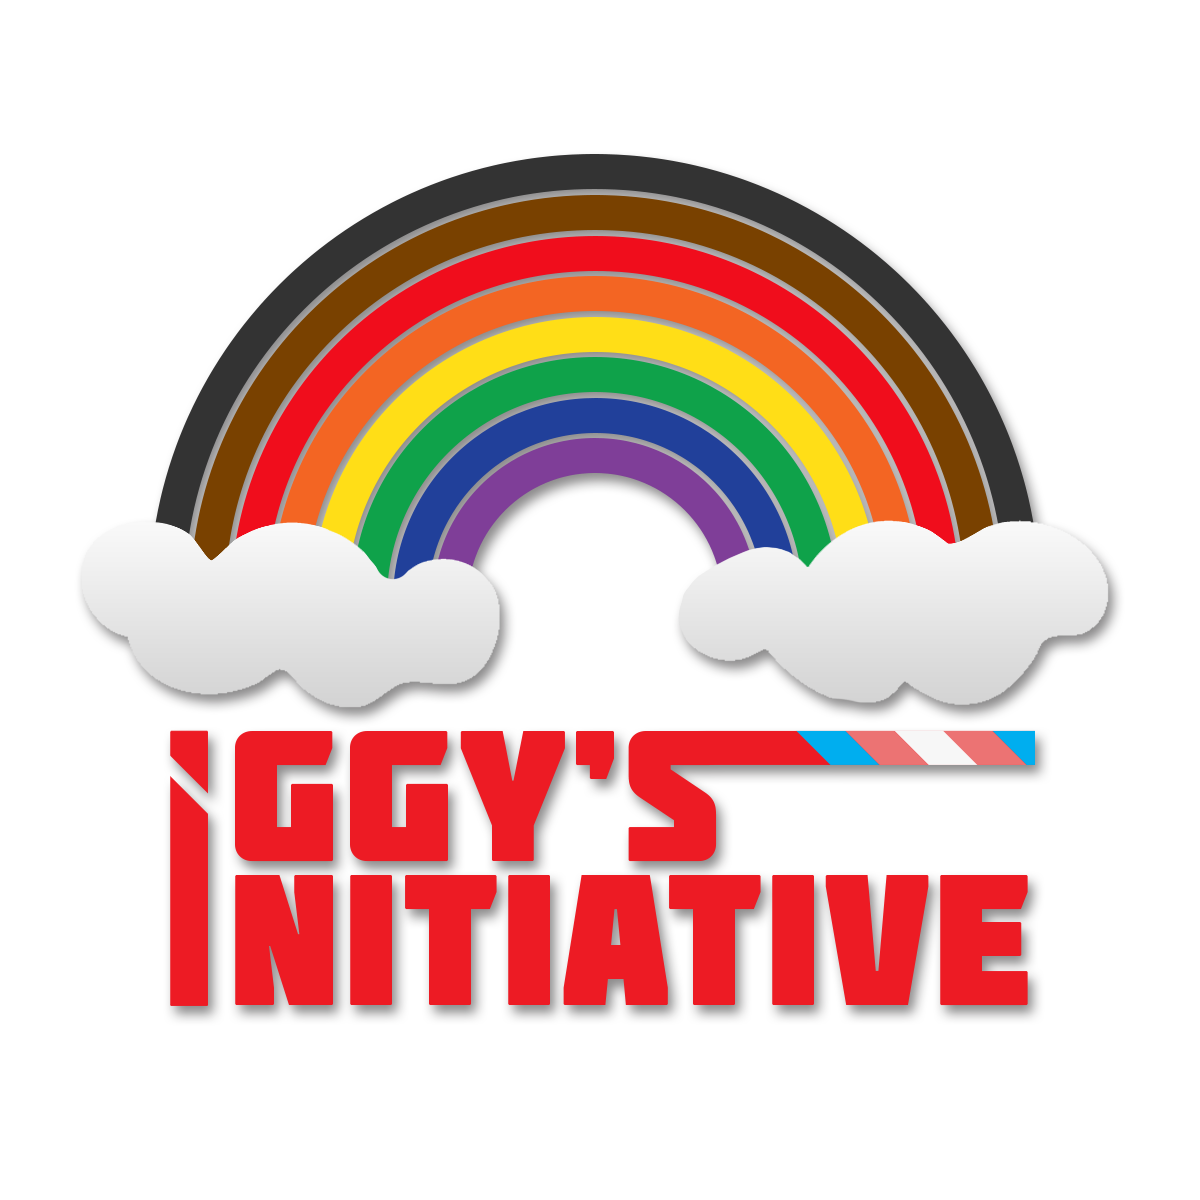 """Logo with PoC-inclusive LGBTQIA+ Pride rainbow bridging two clouds. The words """"Iggy's Initiative"""" are aligned one above the other in red below, with trans pride colours extending out to the right from the final 's' of """"Iggy's"""""""